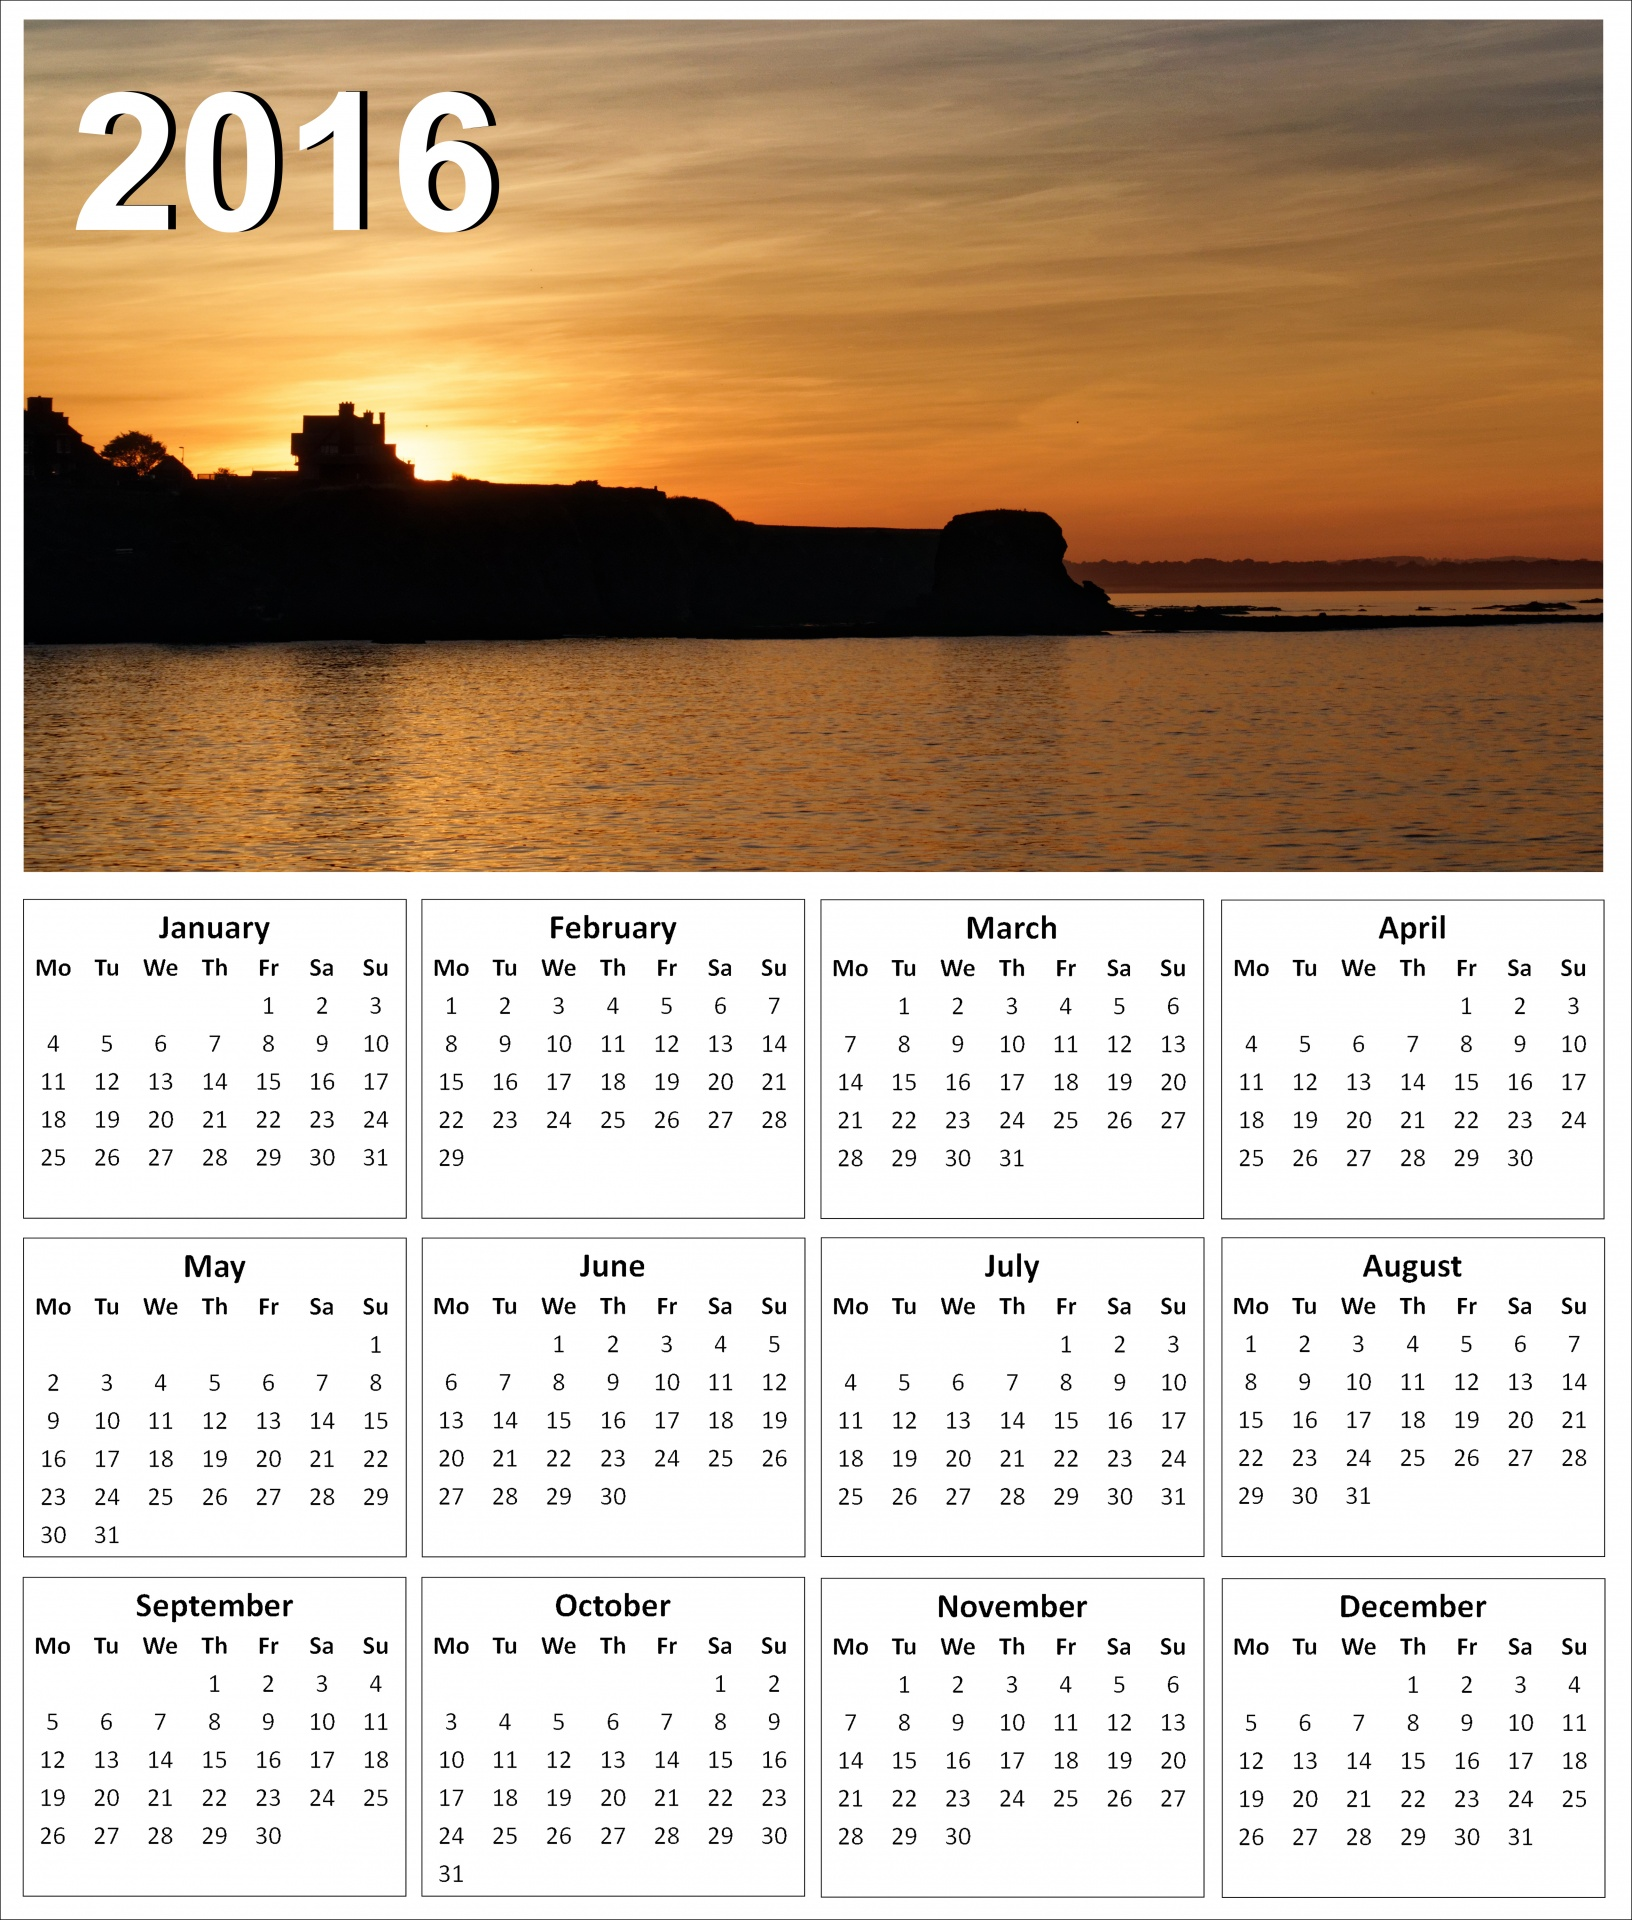 2016 Sunset Calendar Free Stock Photo Public Domain Pictures